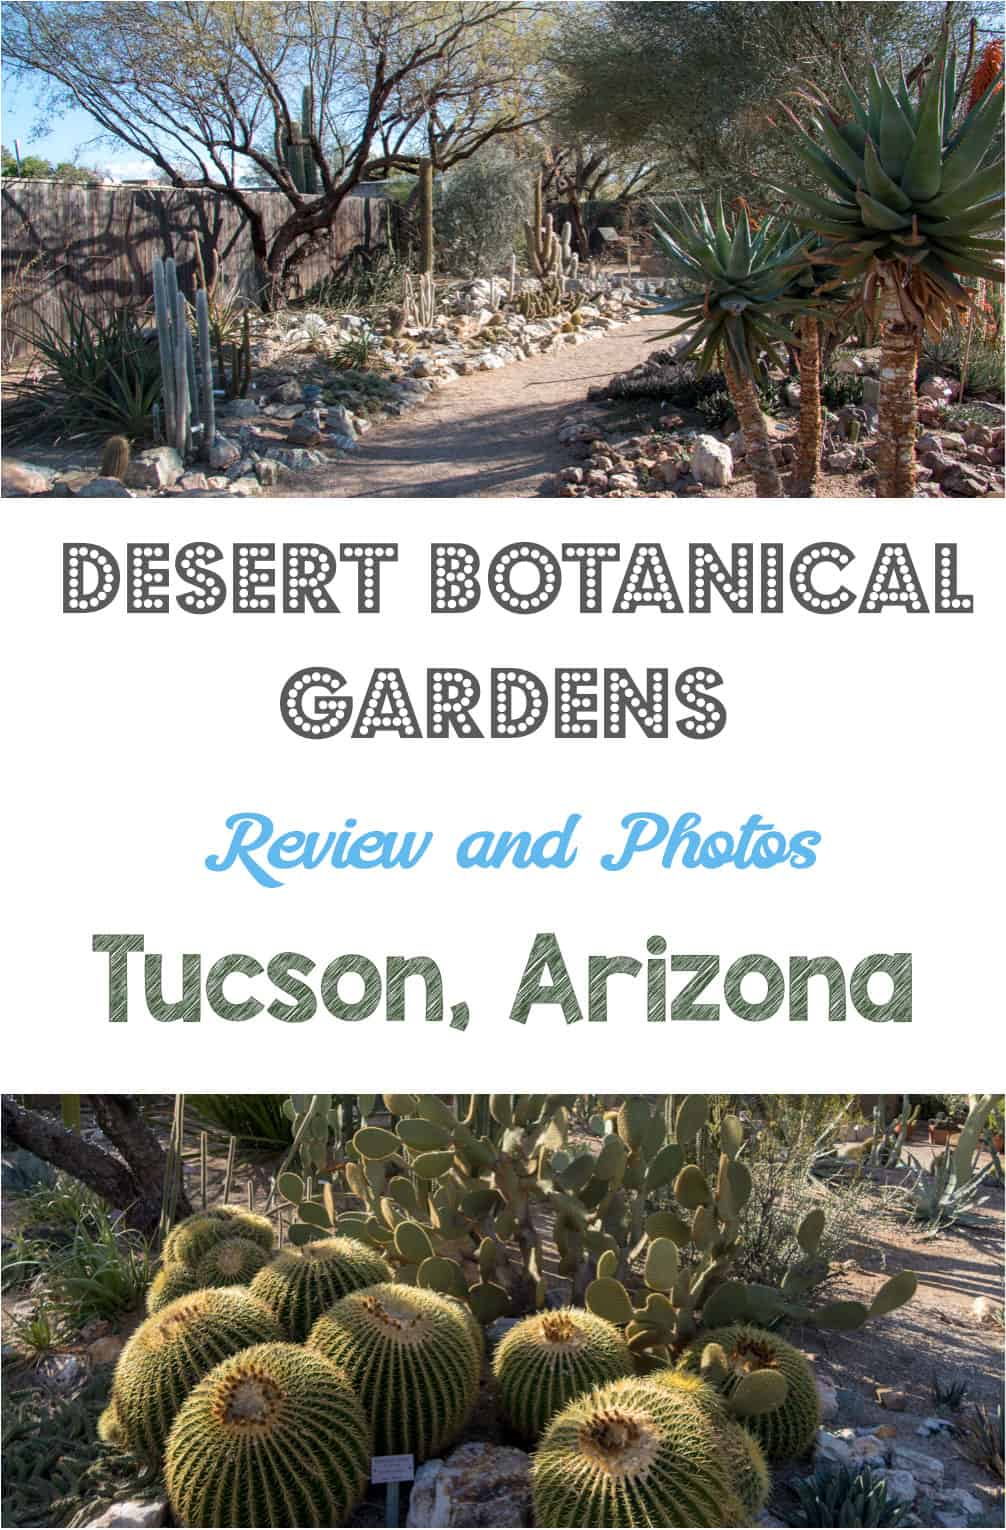 Botanical gardens with cactus in the desert? Indeed. If you're traveling to Tucson, Arizona, check out the Tucson Botanical Gardens